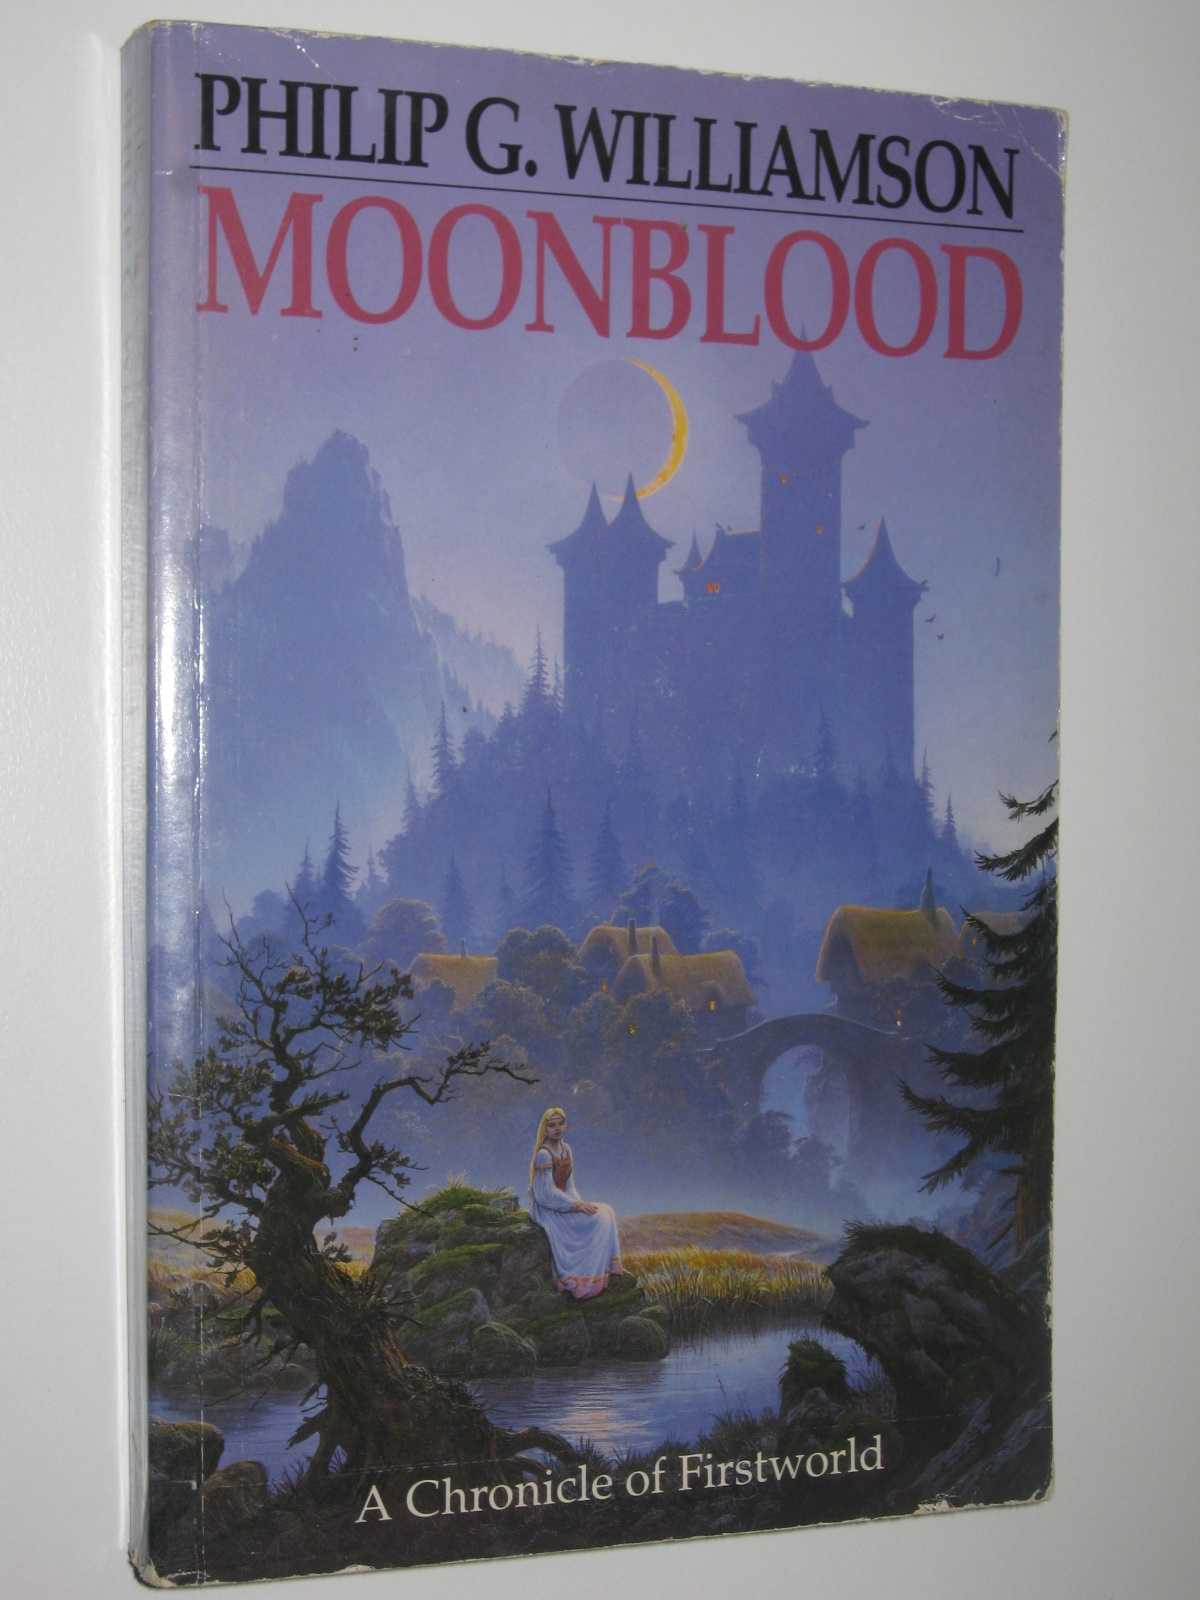 Moonblood - The Firstworld Chronicles #4, Williamson, Philip G.